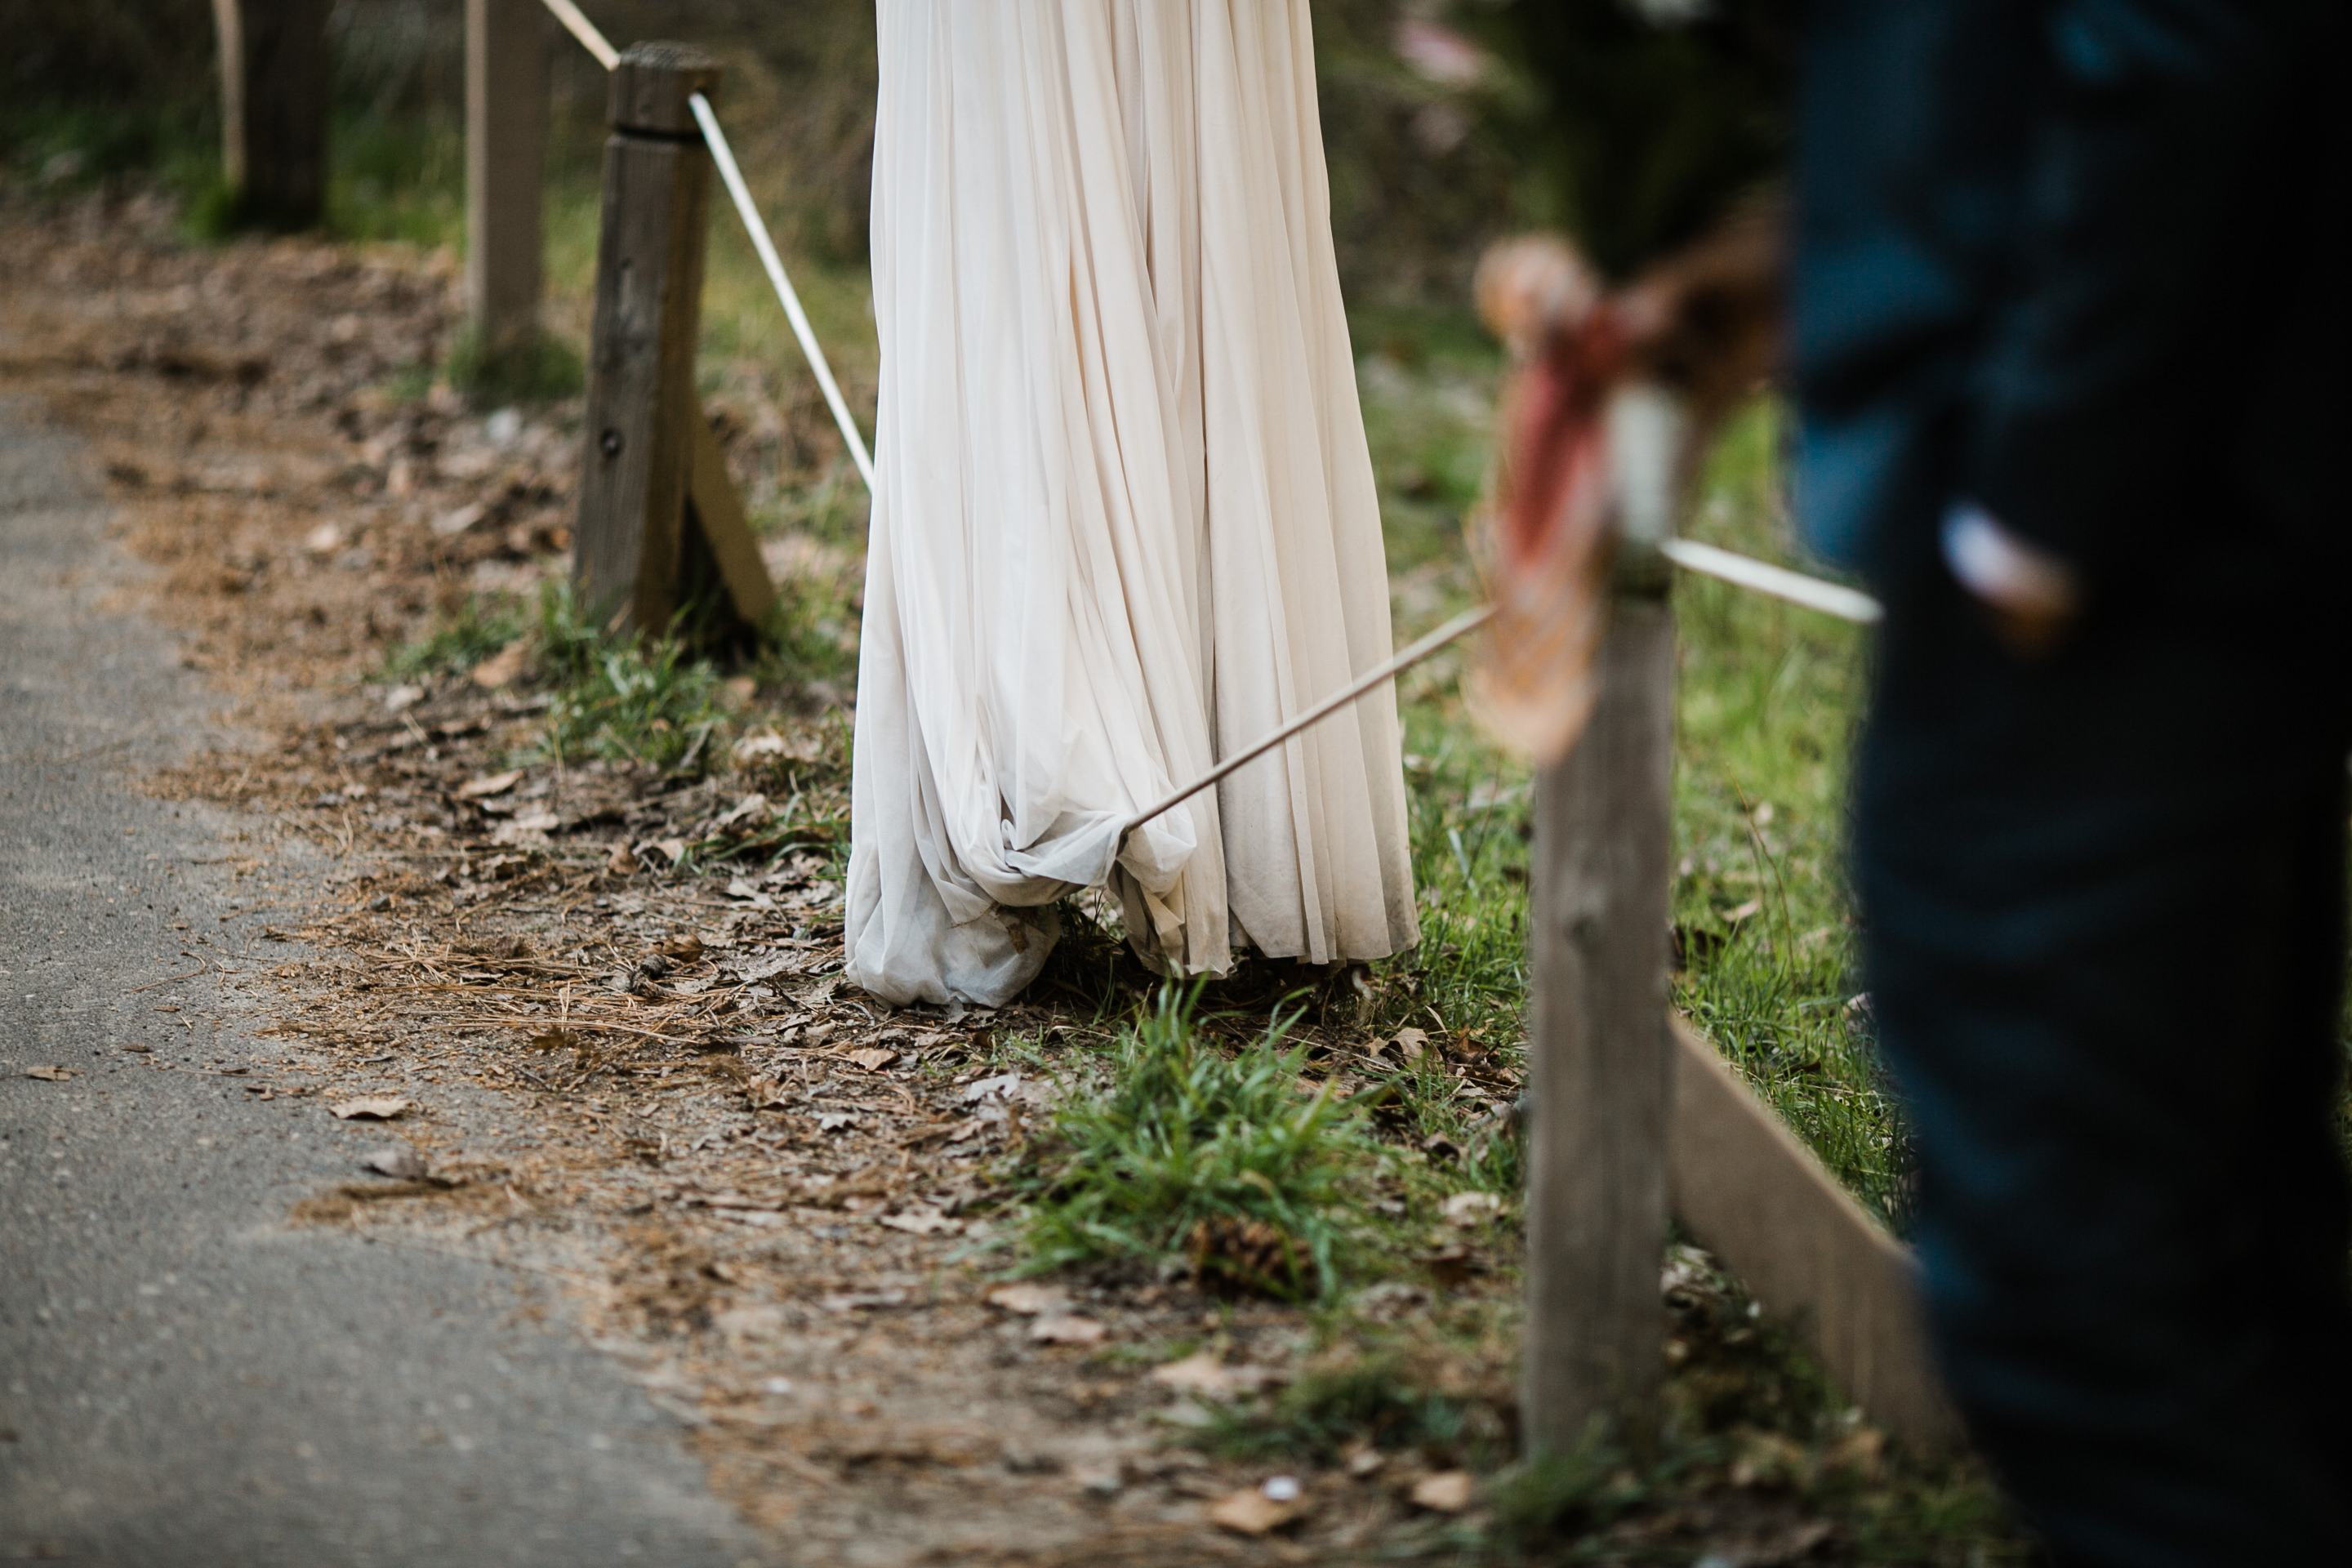 Kim shows off her slack lining skills in her wedding dress at Yosemite.